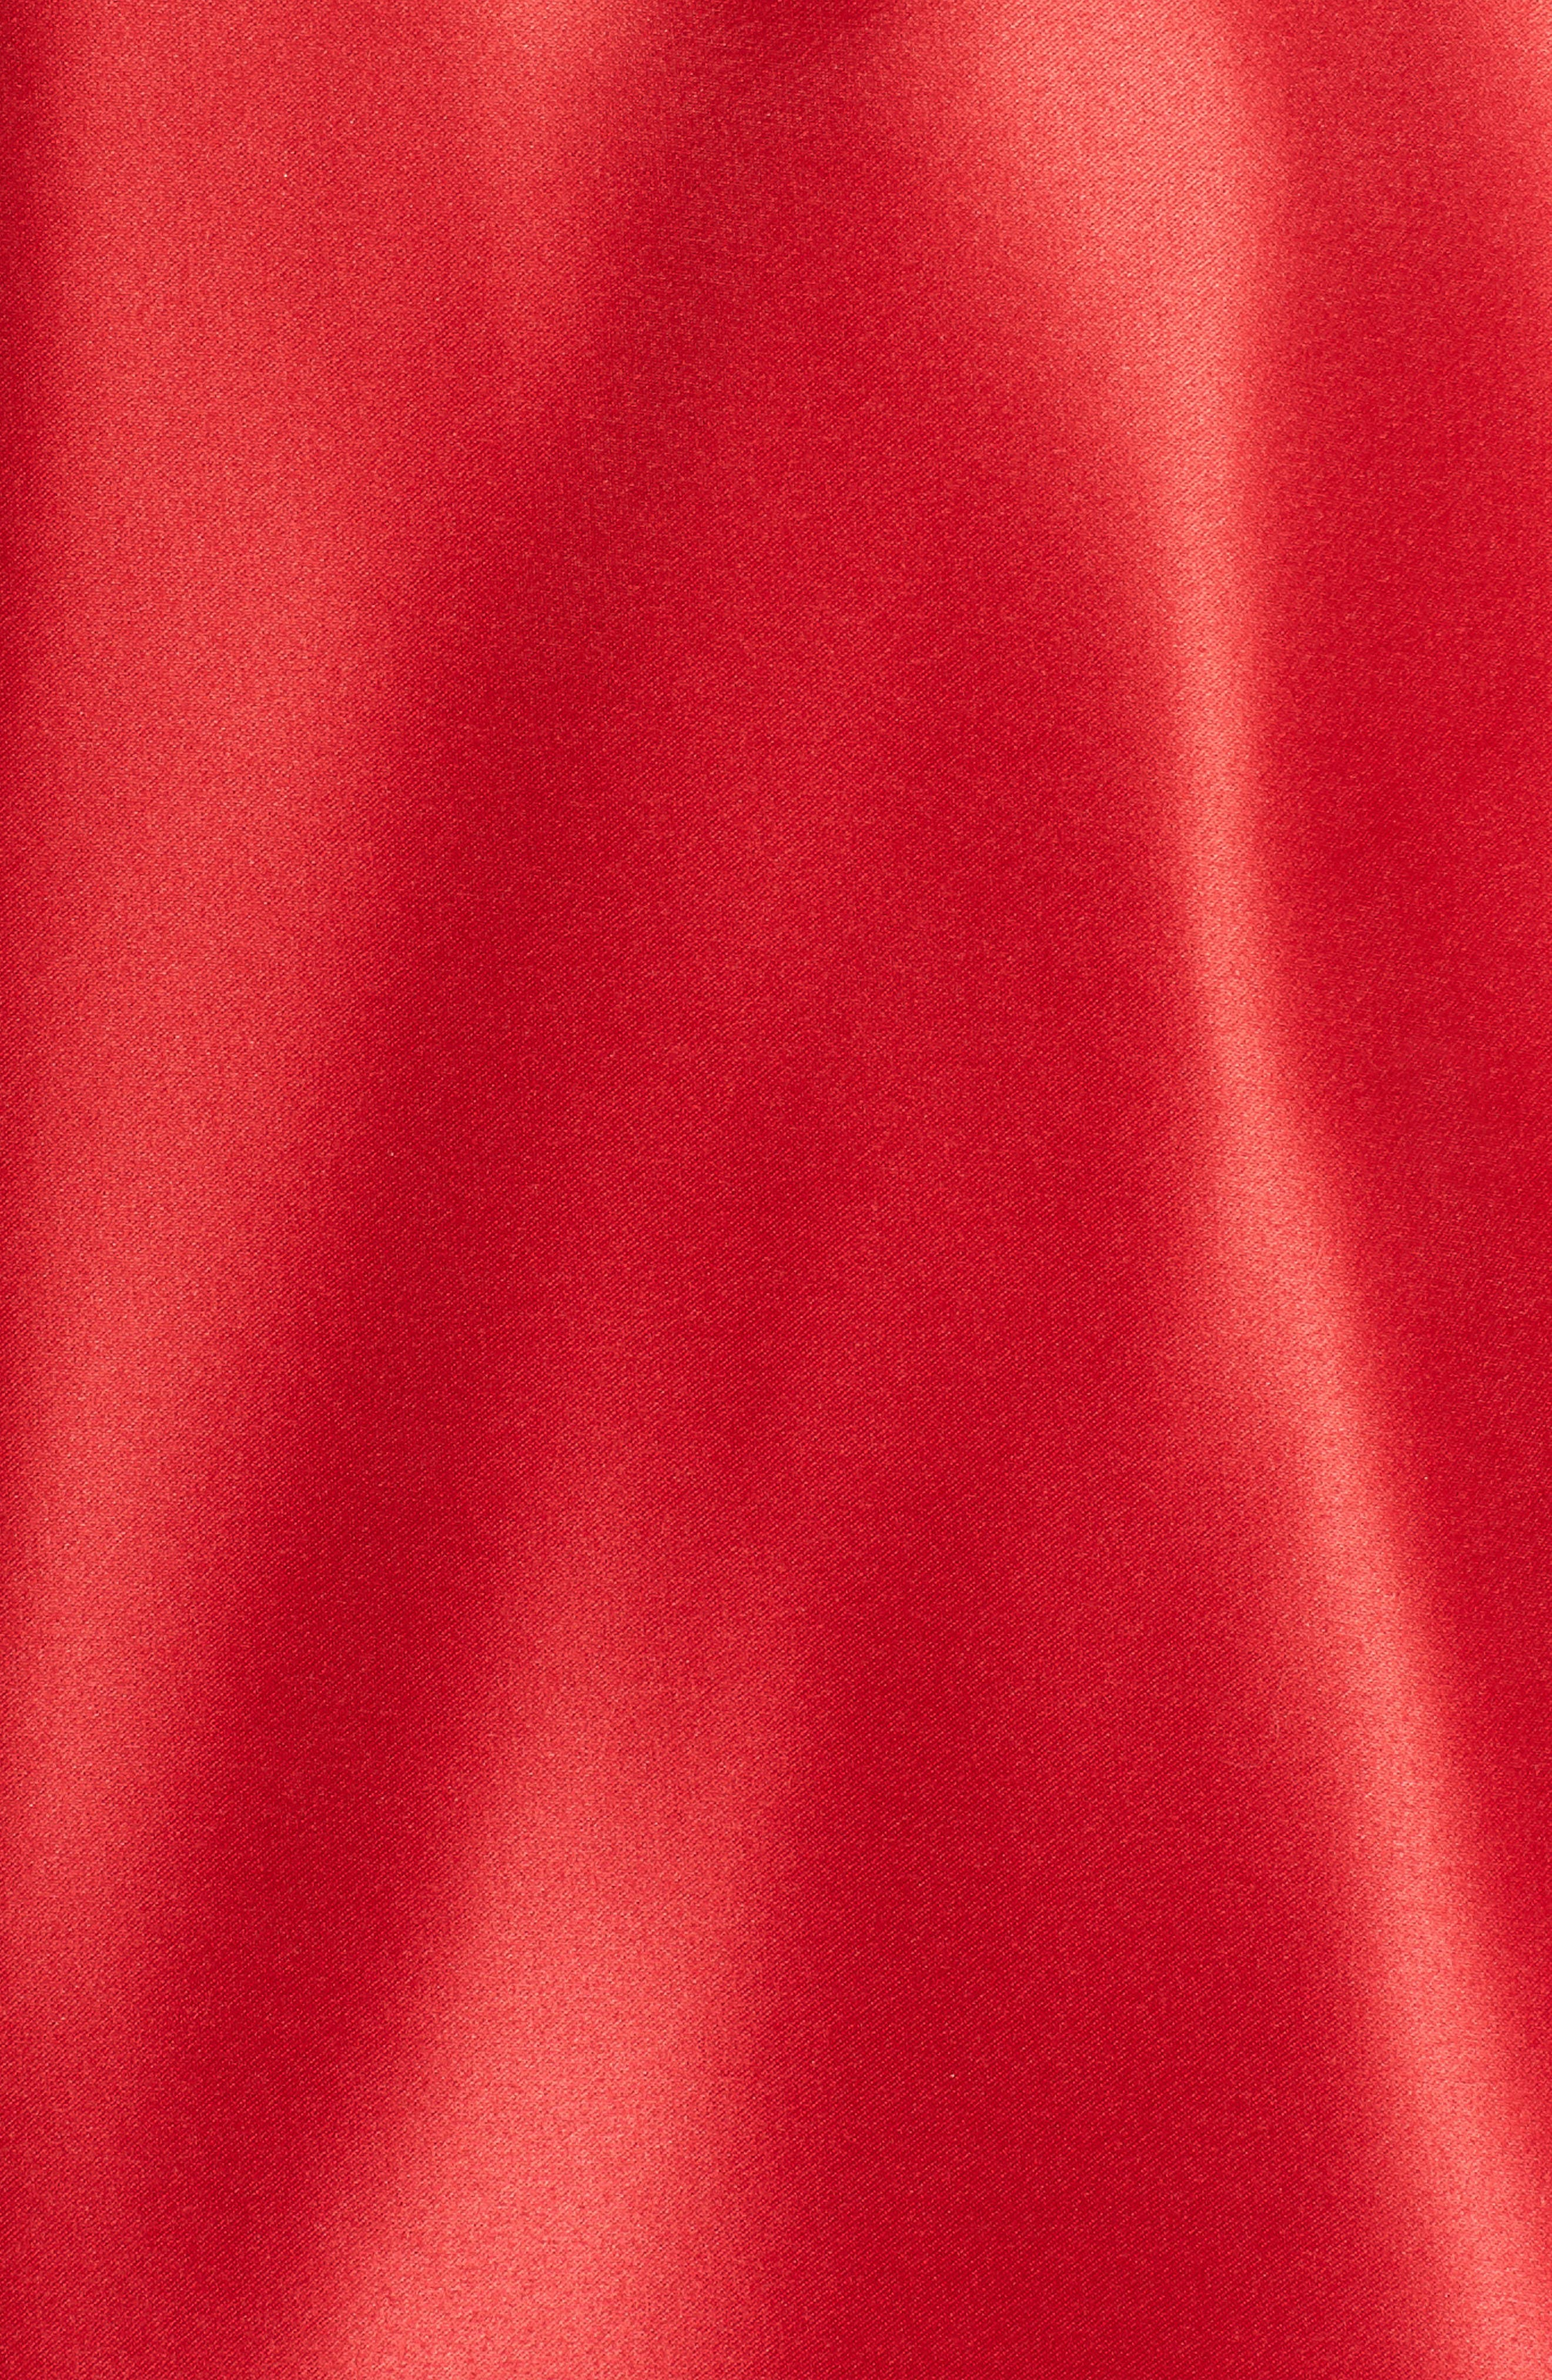 Strapless Satin Fit & Flare Party Dress,                             Alternate thumbnail 5, color,                             RED